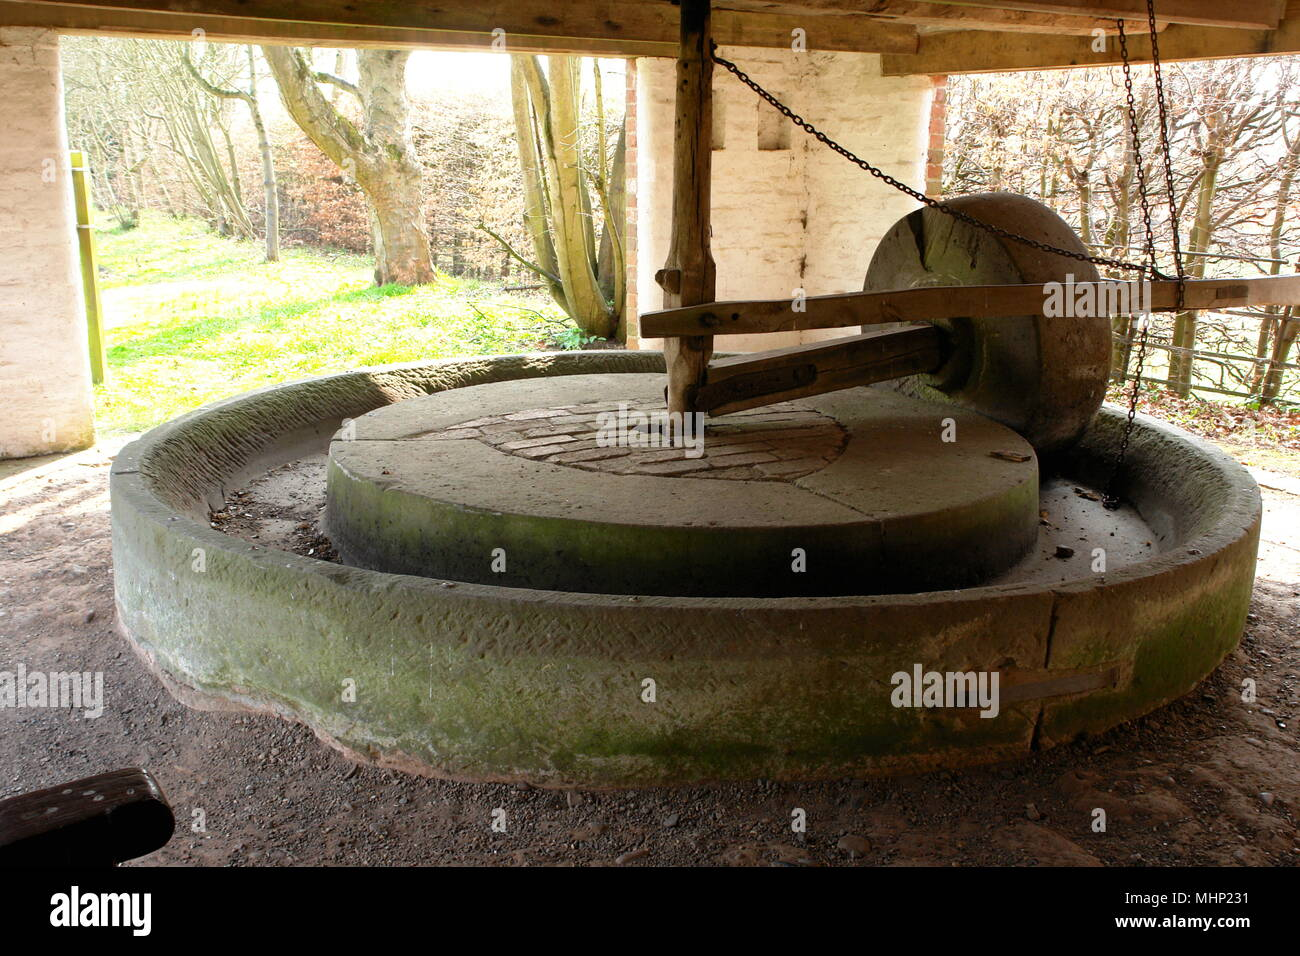 Cider Press at the Avoncroft Museum of Buildings, near Bromsgrove, Worcestershire.     Date: 2010s - Stock Image